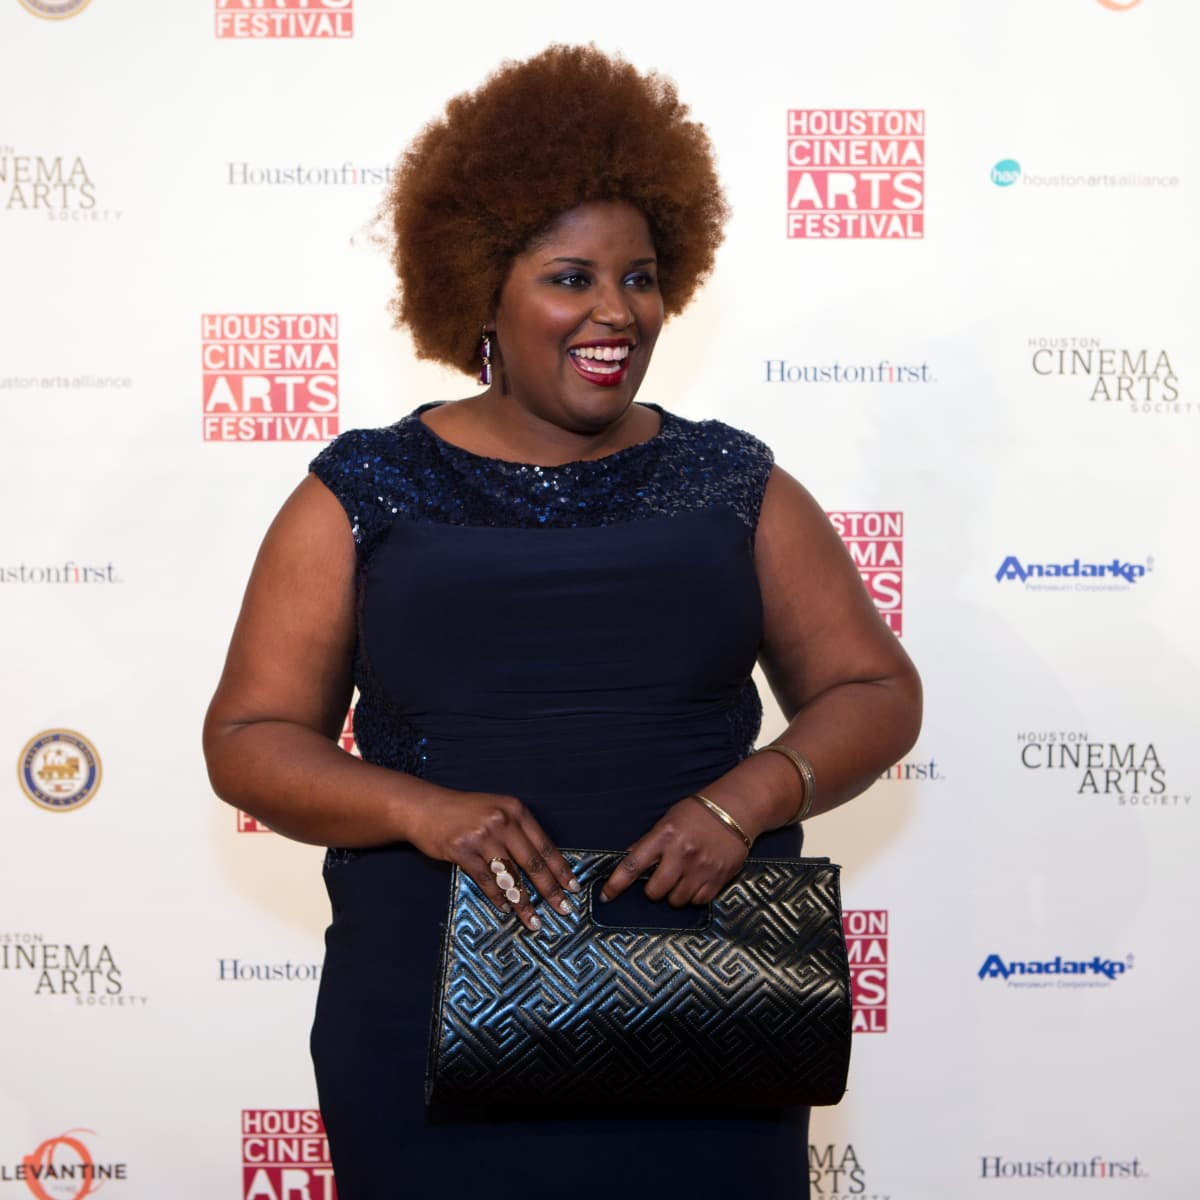 Houston, Cinema Arts Fest opening night, November 2015, Kam Franklin